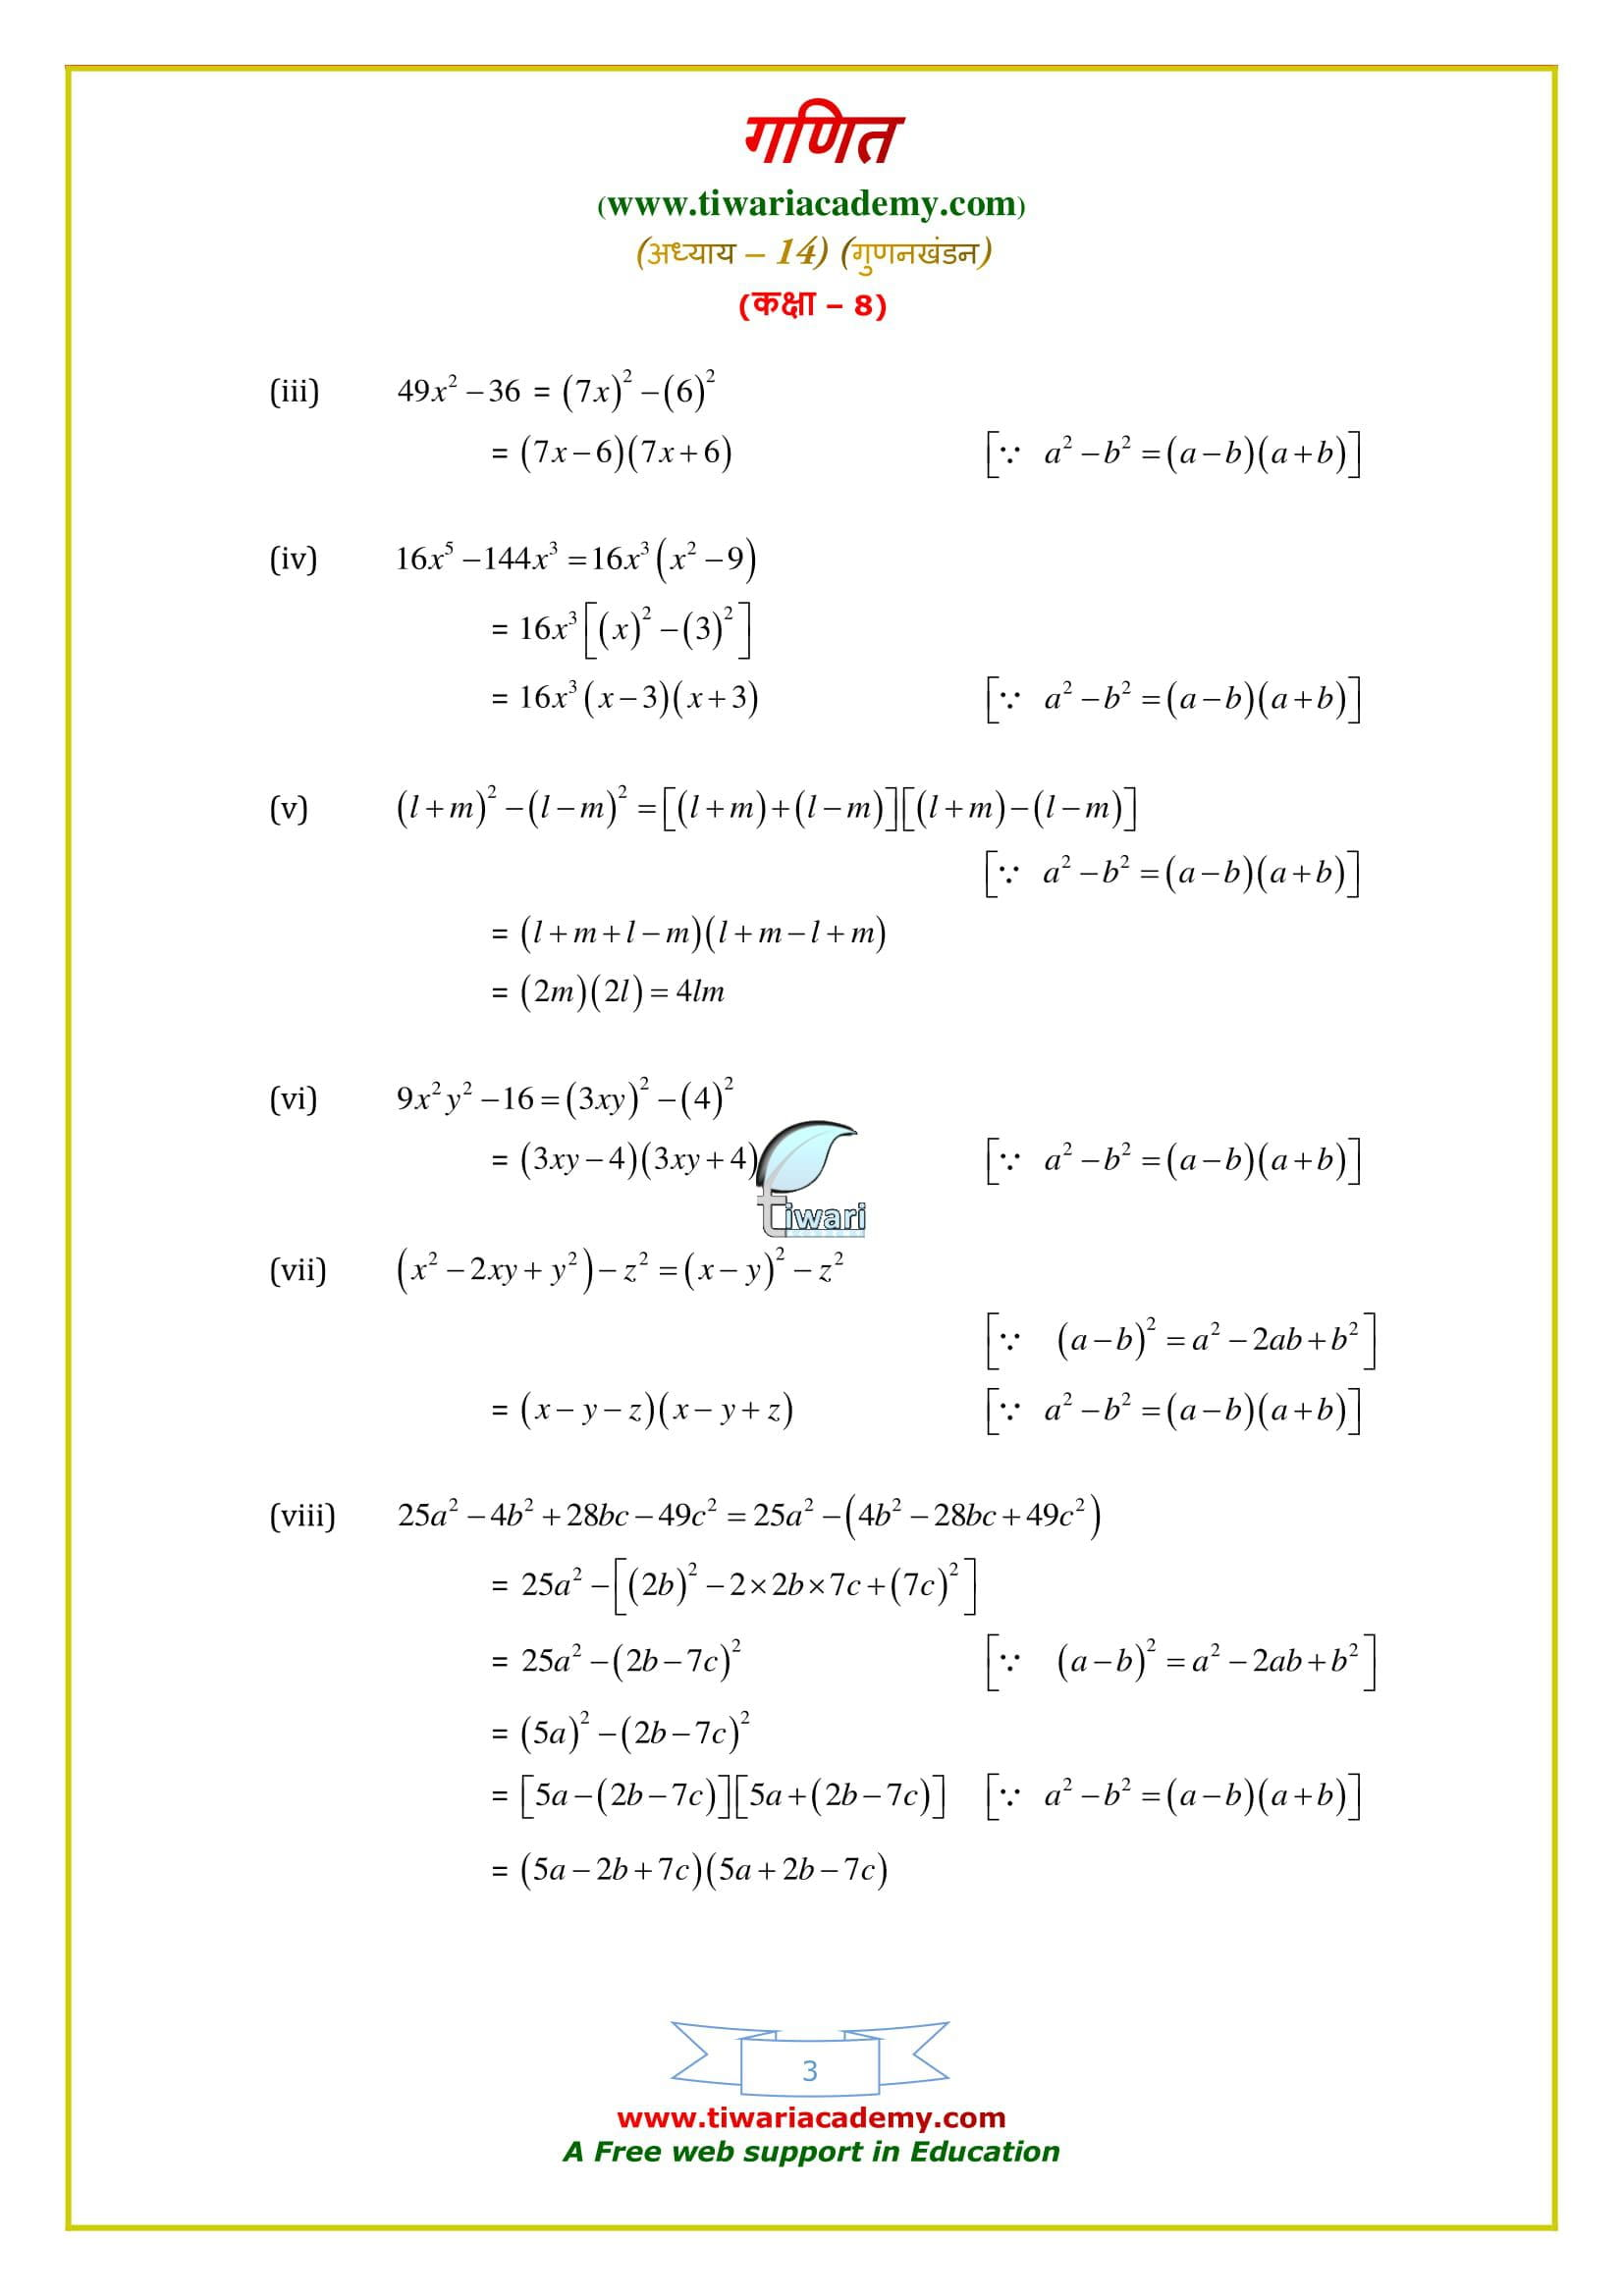 8 Maths Exercise 14.2 solutions all question answers guide free